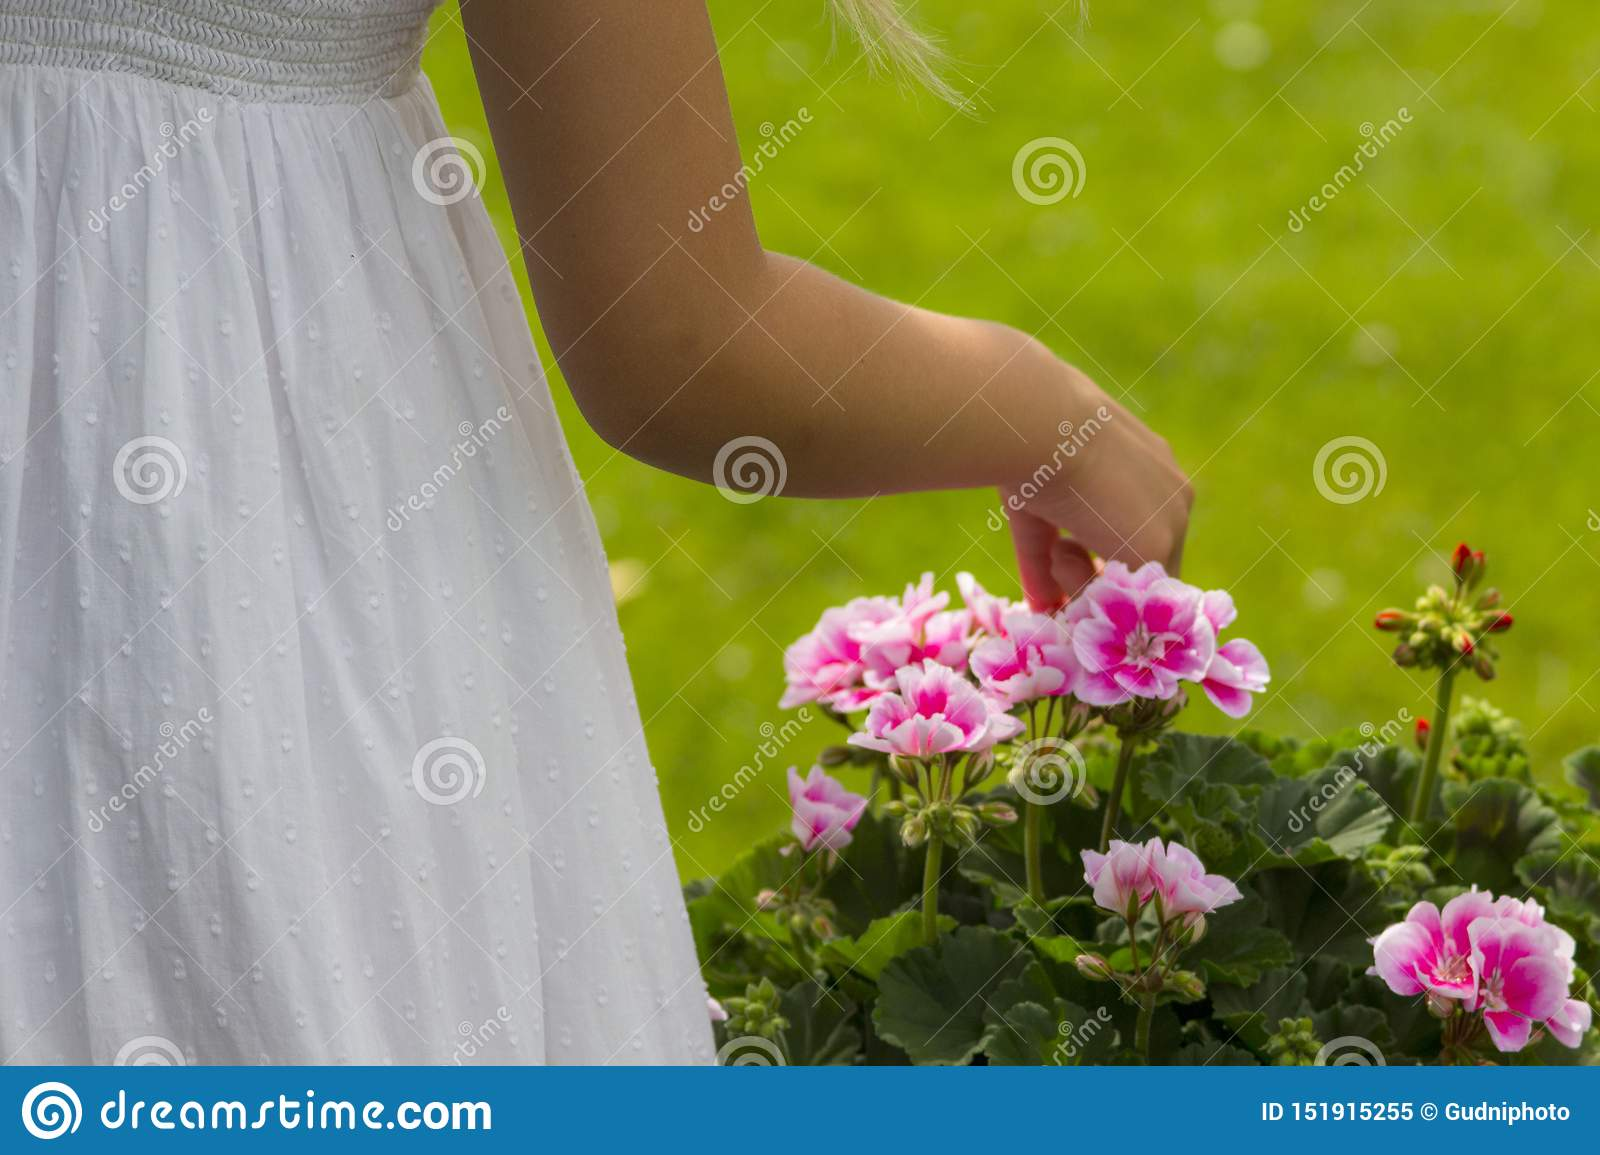 Girl in a dress picking flowers